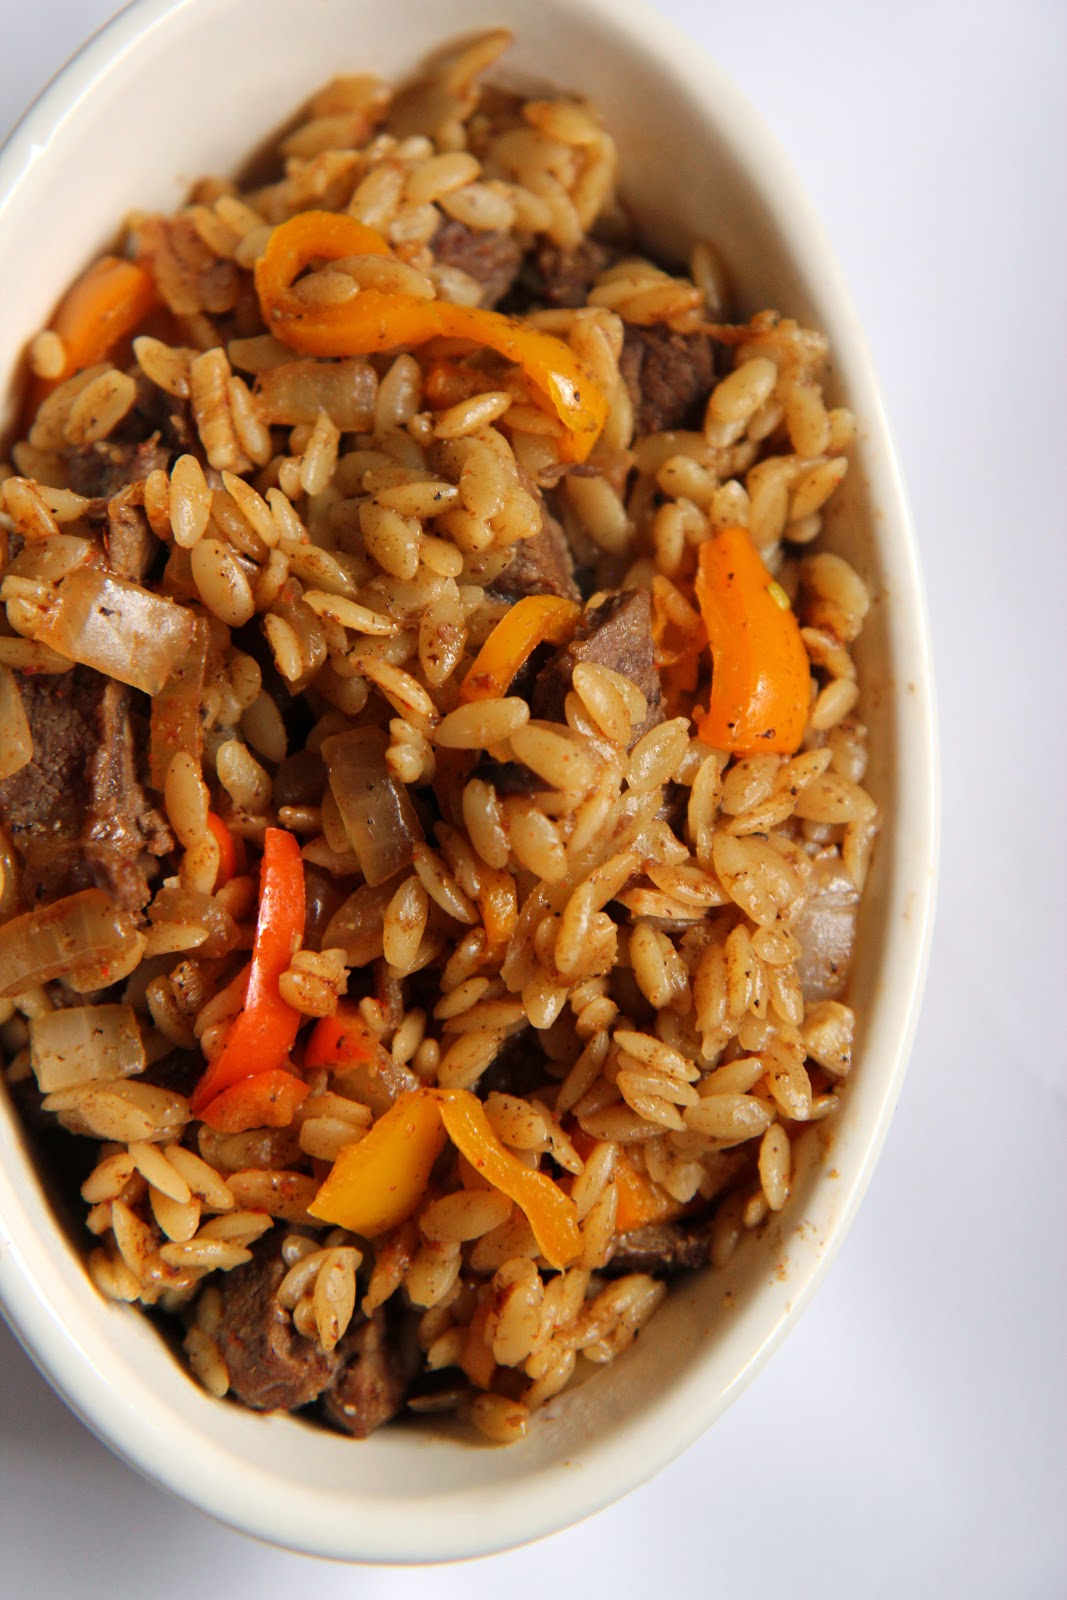 This quick and filling orzo dish is inspired by fajitas!